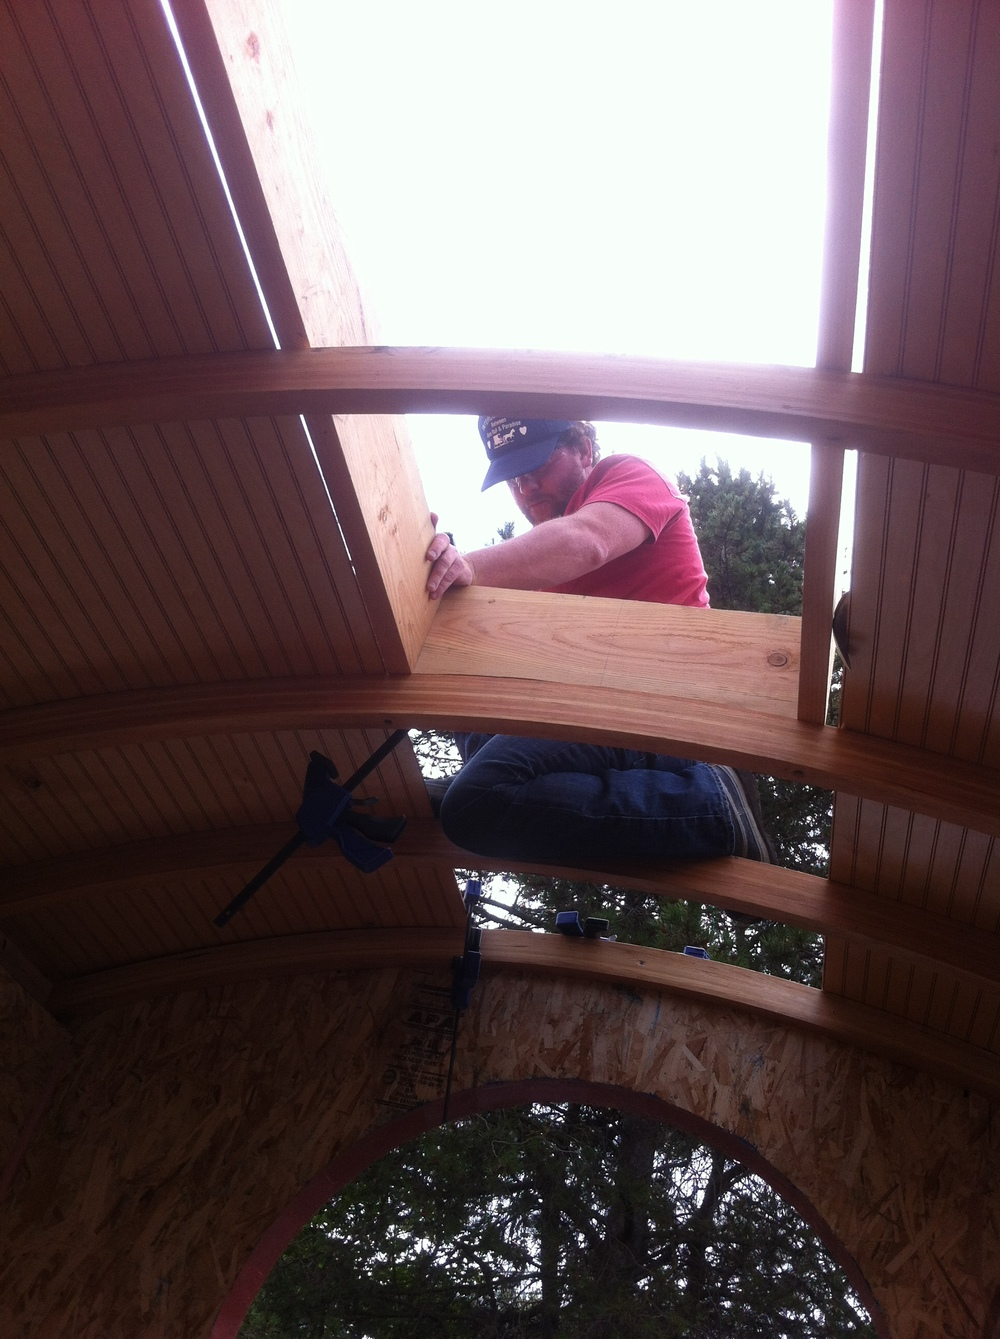 Kenny-Clamping-Ceiling-Panel.jpg